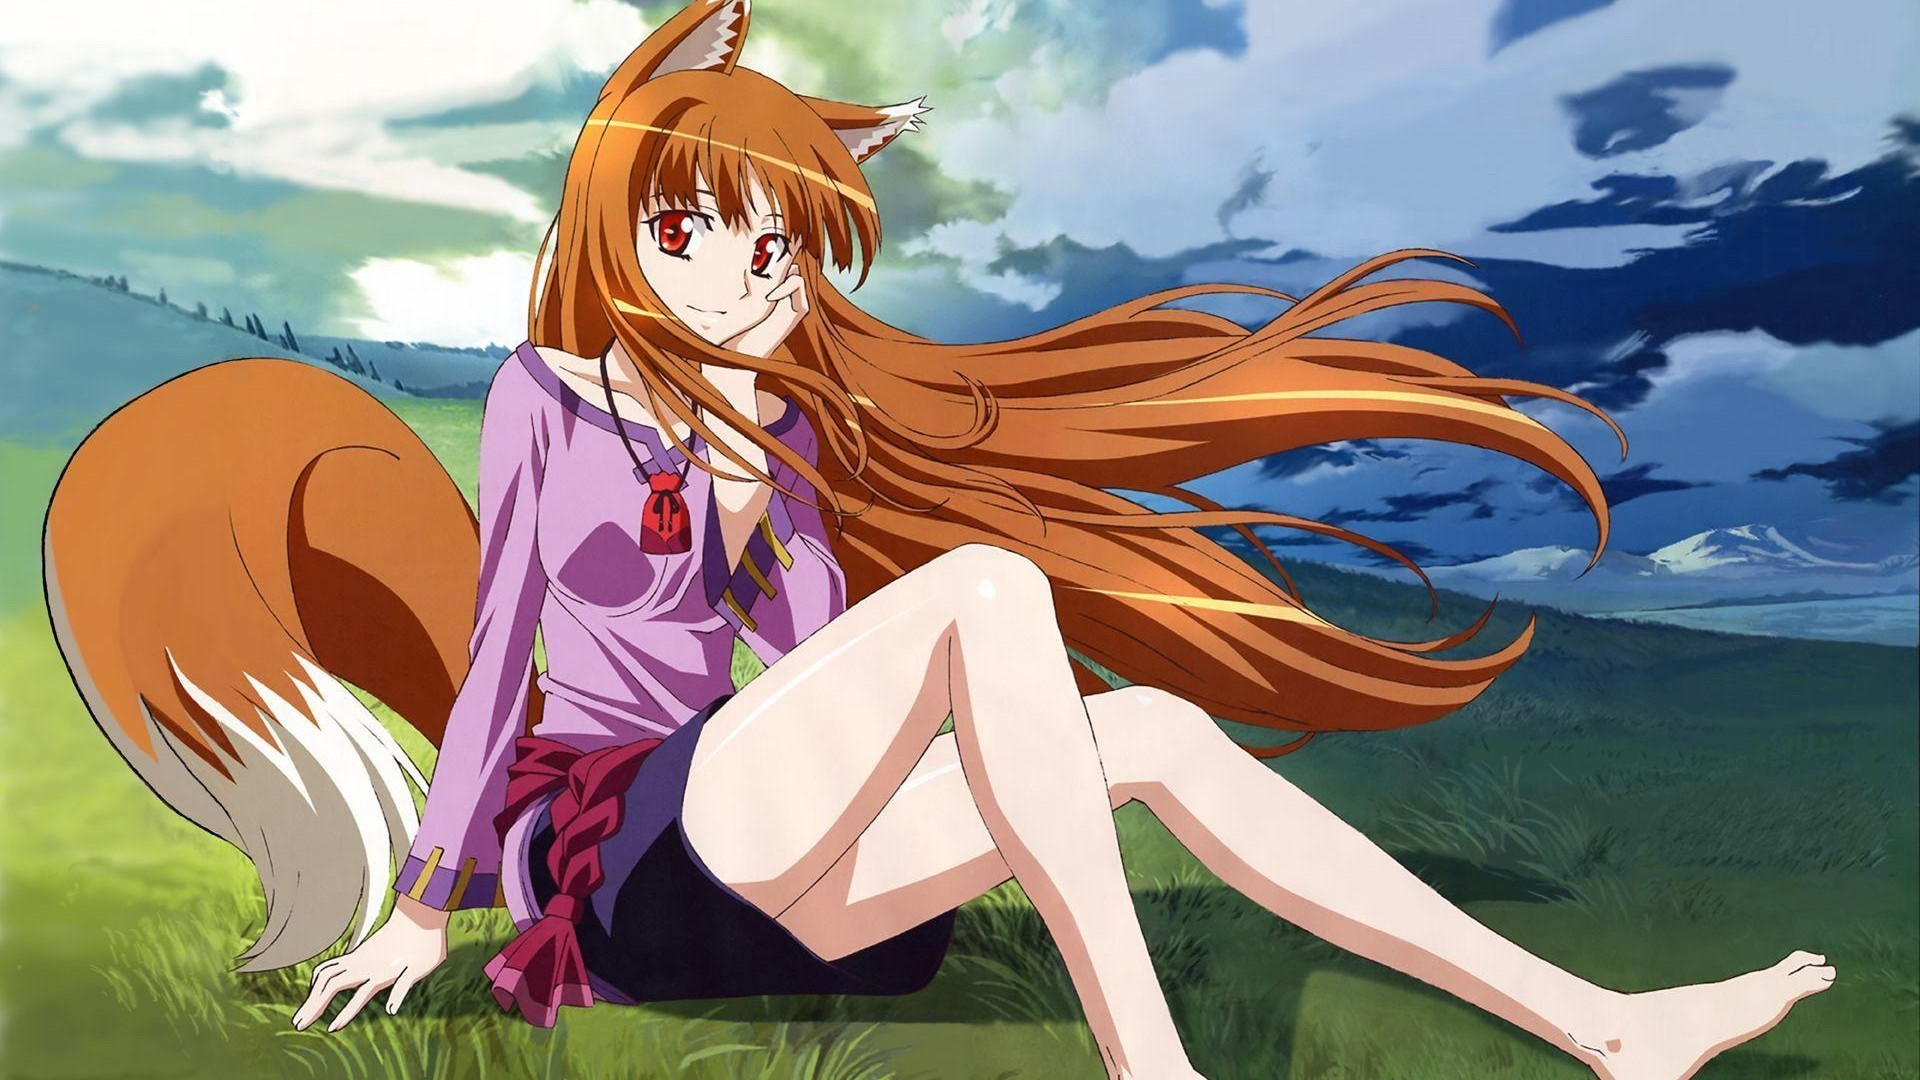 Holo in Spice and Wolf